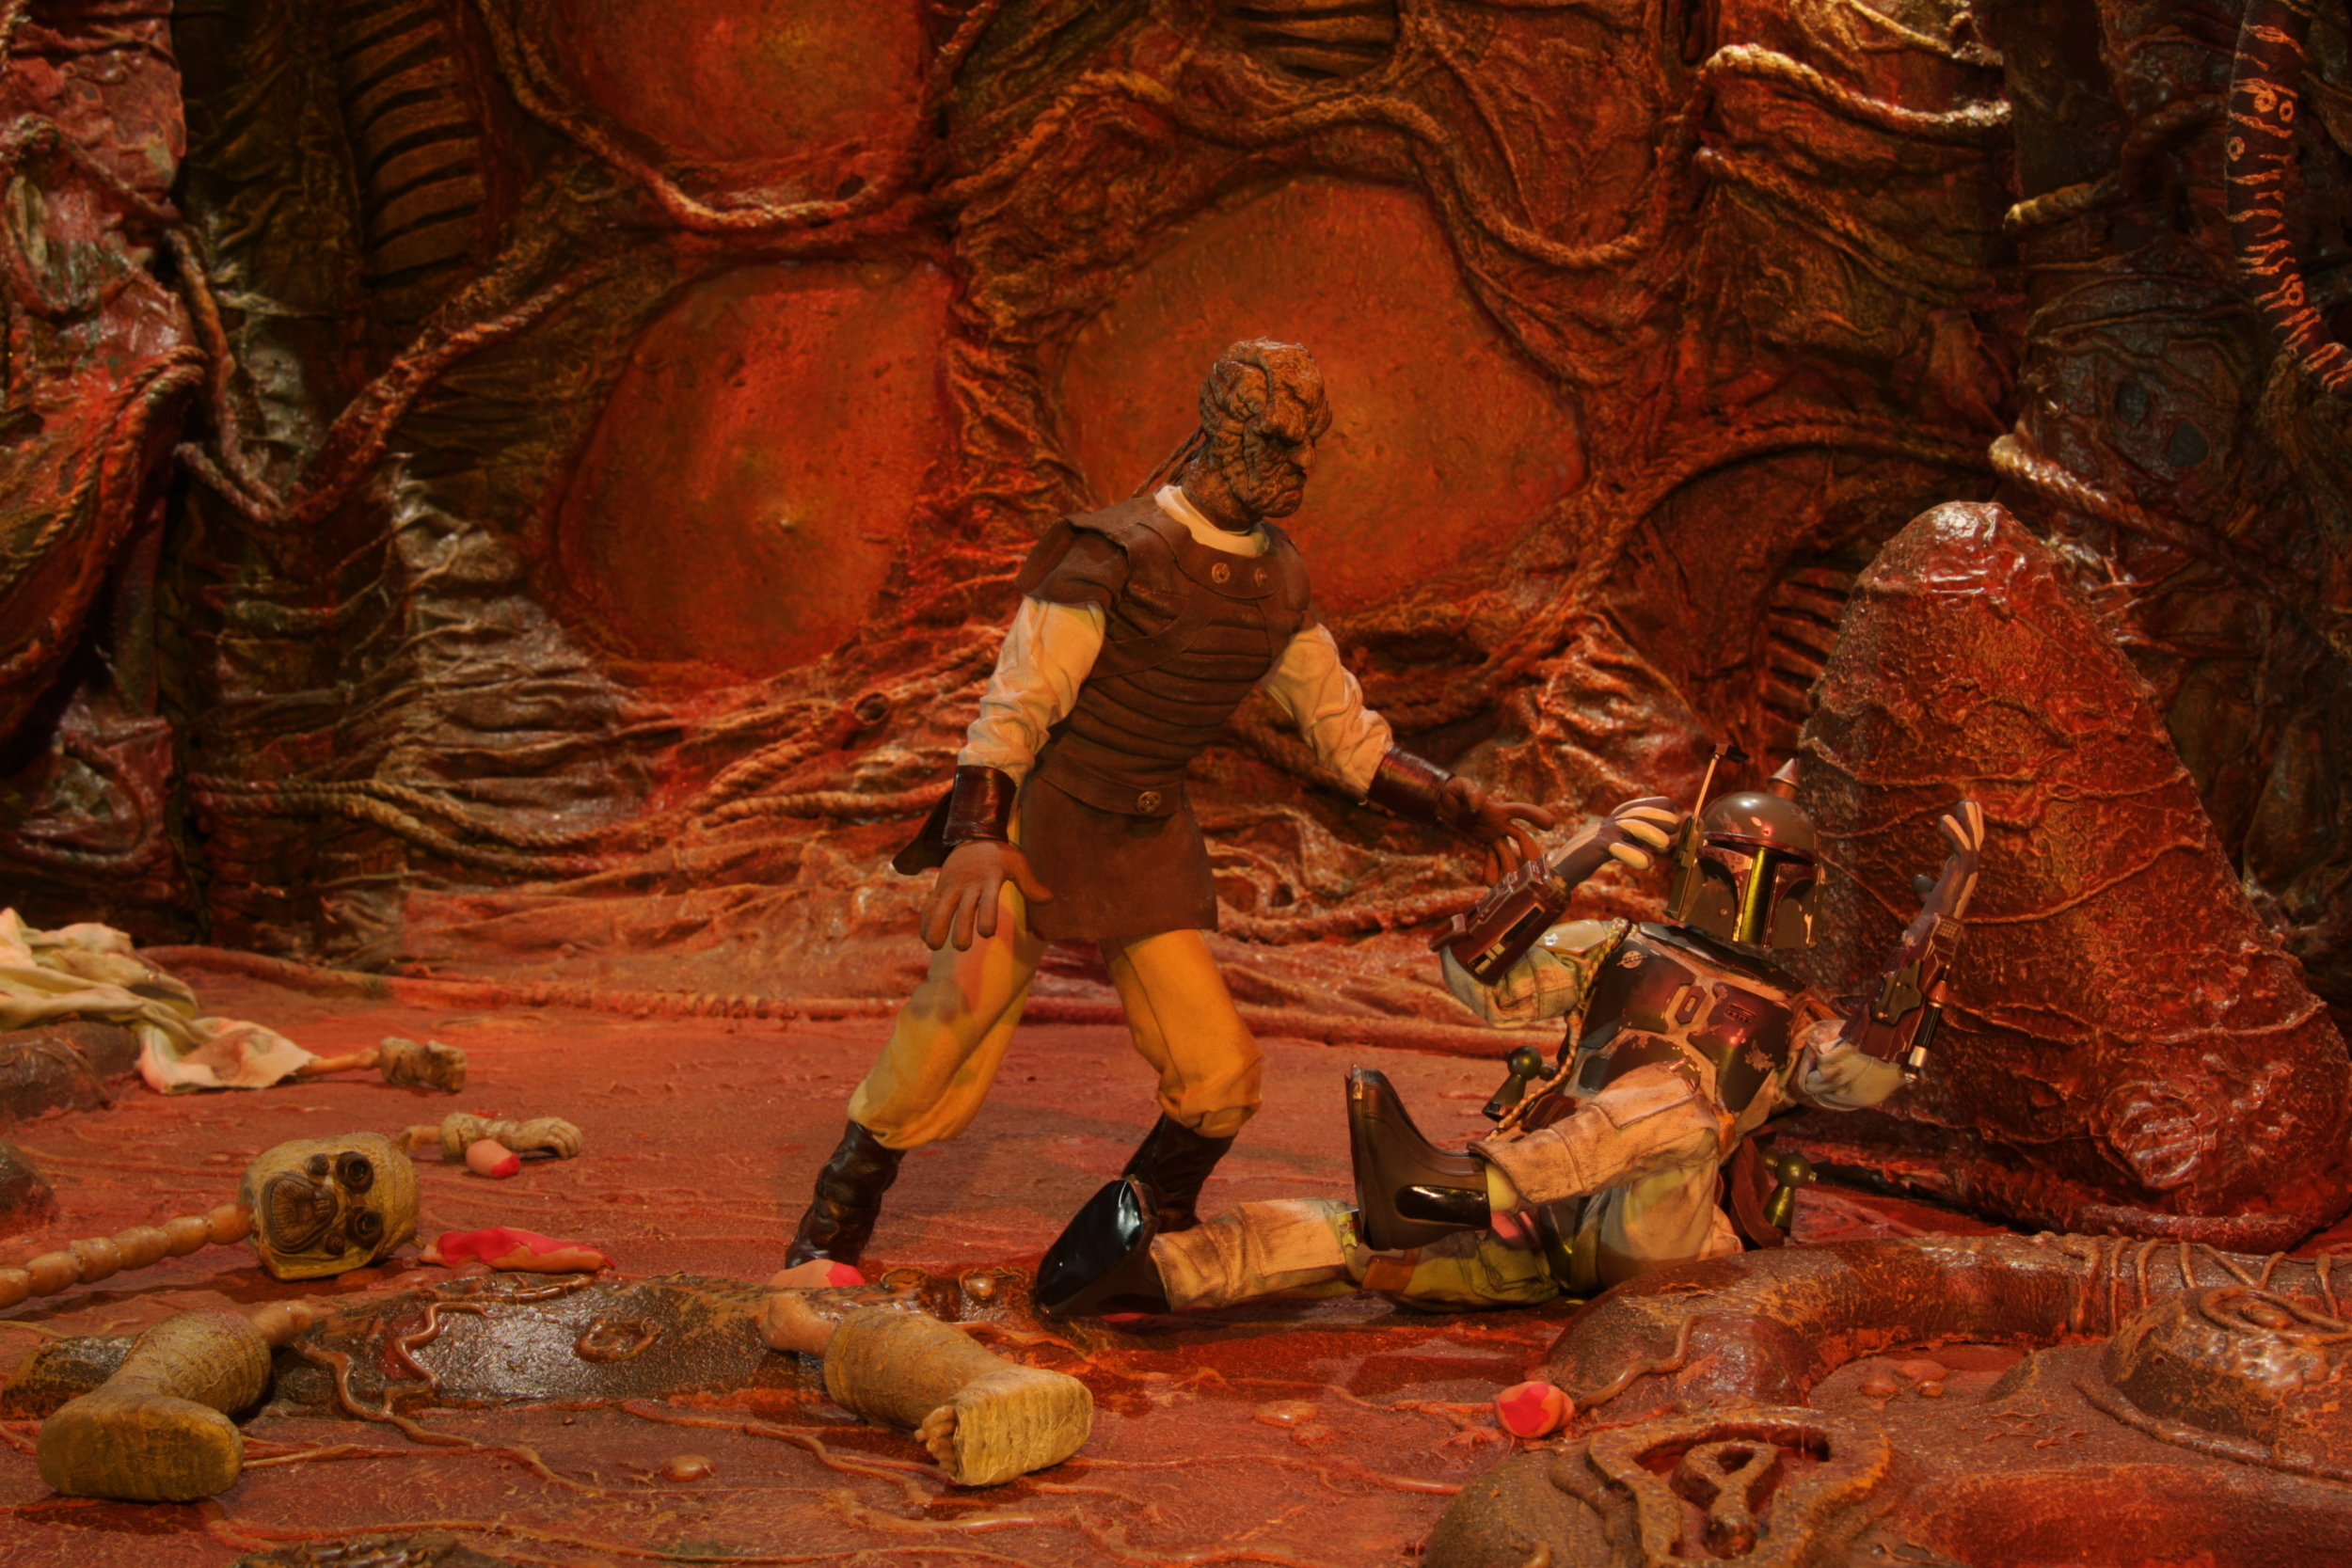 Robot Chicken Star Wars 2 Image 38.jpg